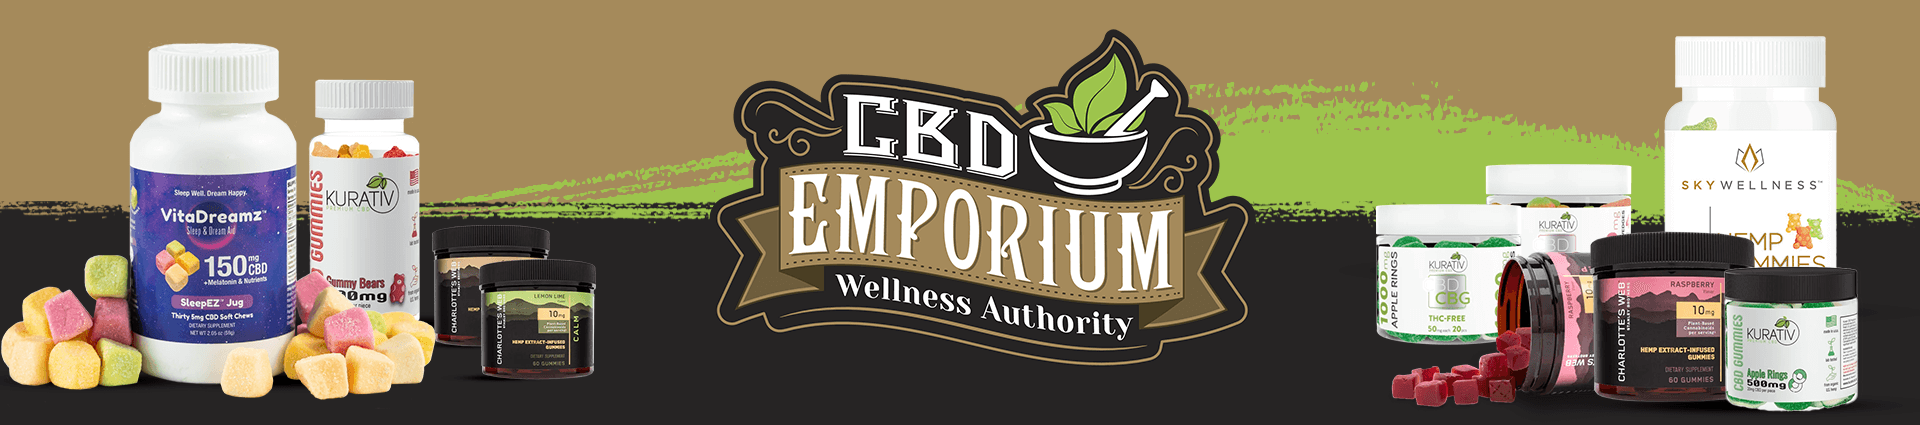 CBD Gummies Sold at CBD Emporium